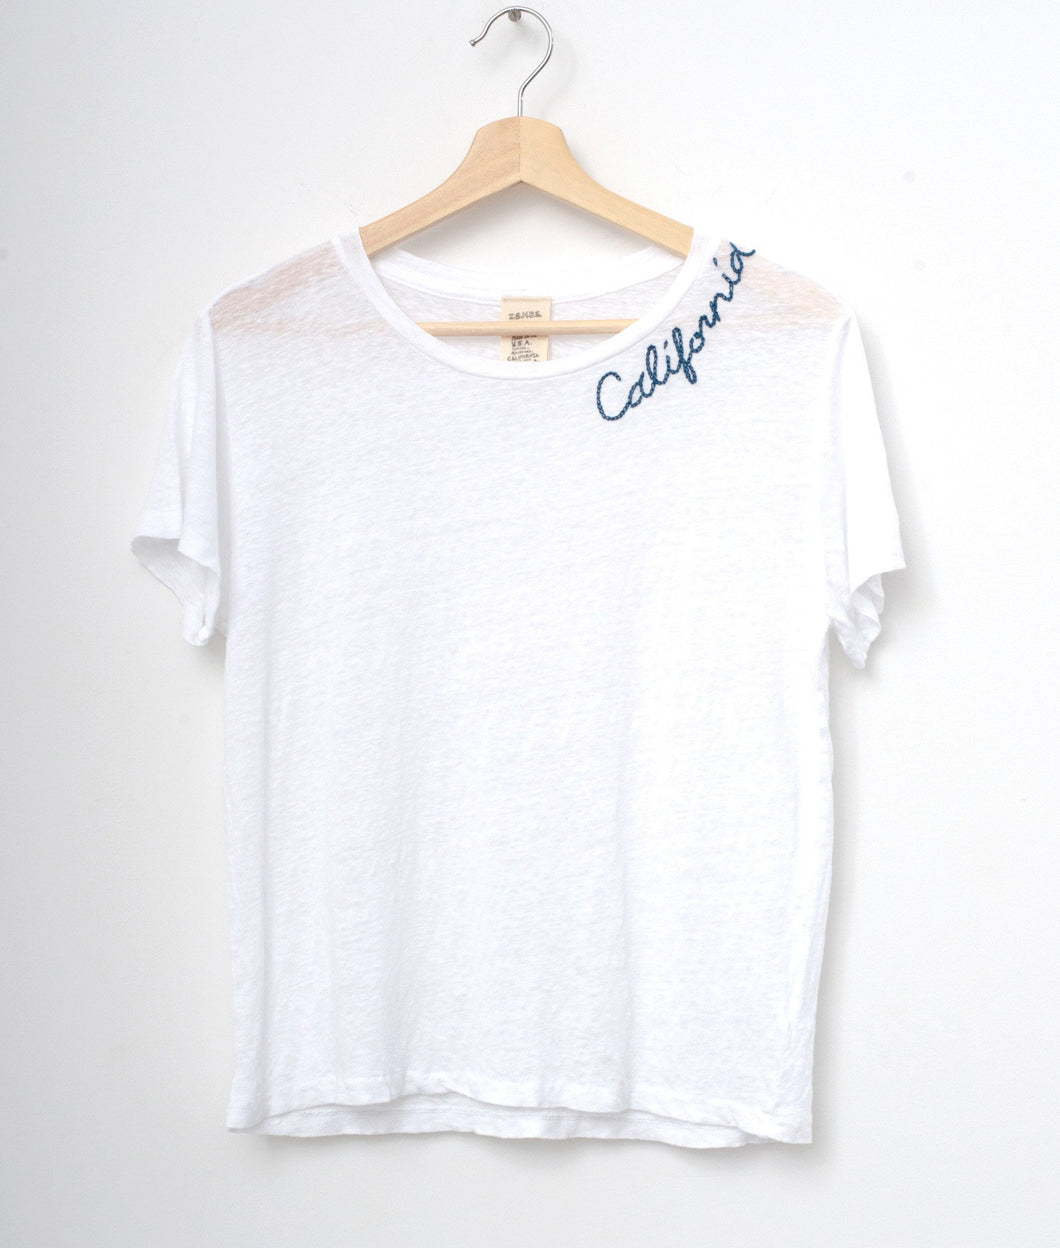 WHITE S/S TEE WITH CUSTOM HAND EMBROIDERY